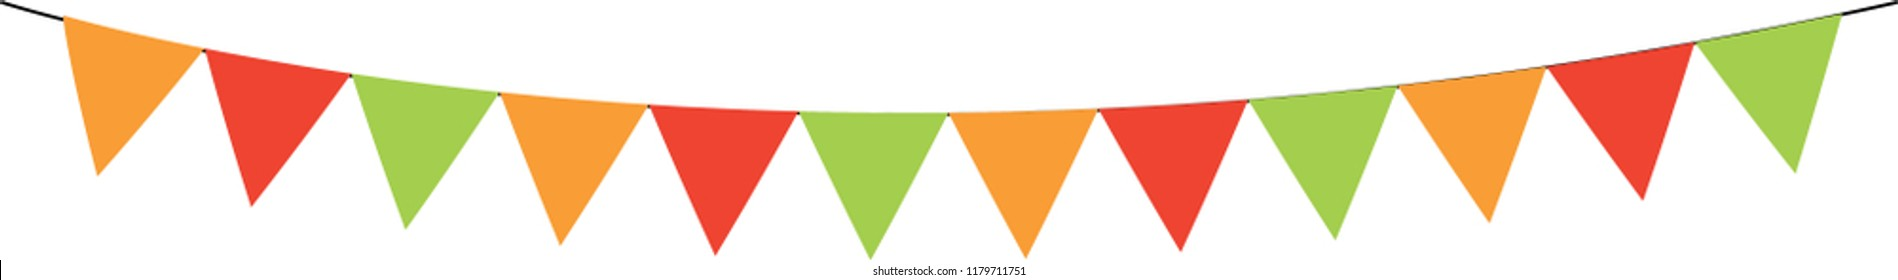 bunting images stock photos vectors shutterstock